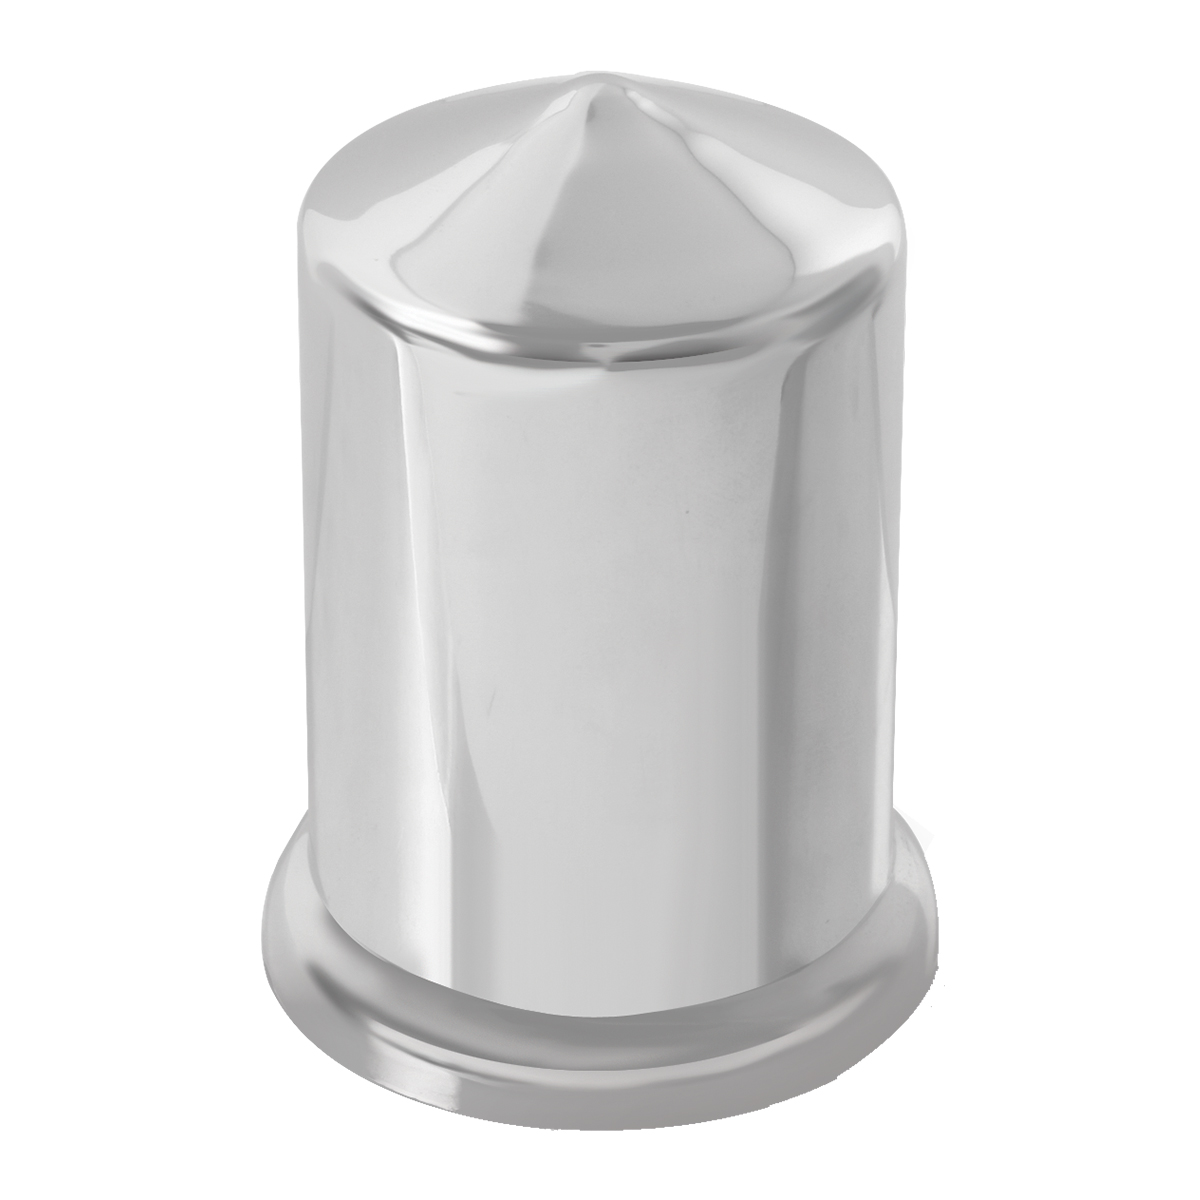 "Chrome Plastic 1 ½"" Push-On Multi-Size Round Pointed Lug Nut Cover"